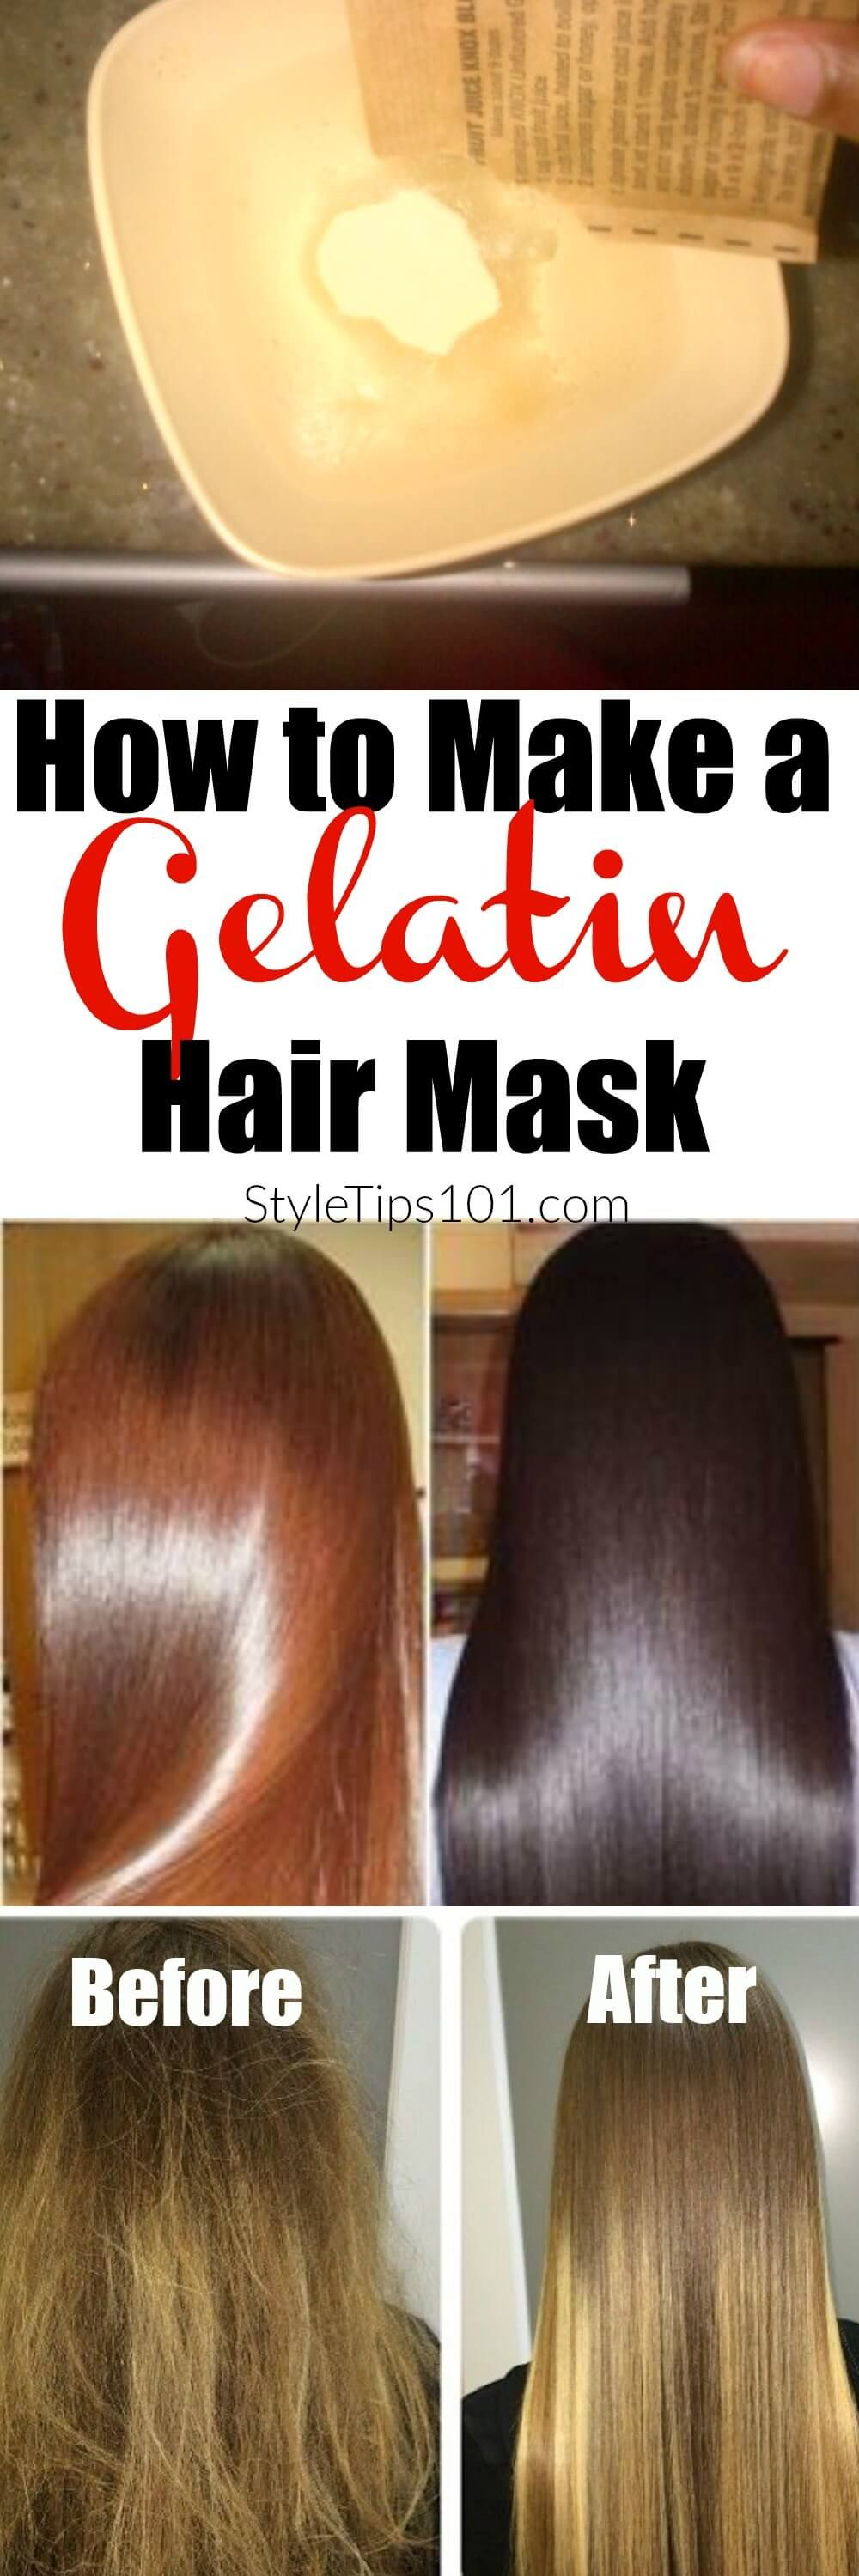 Gelatin hair mask and method of its preparation 9